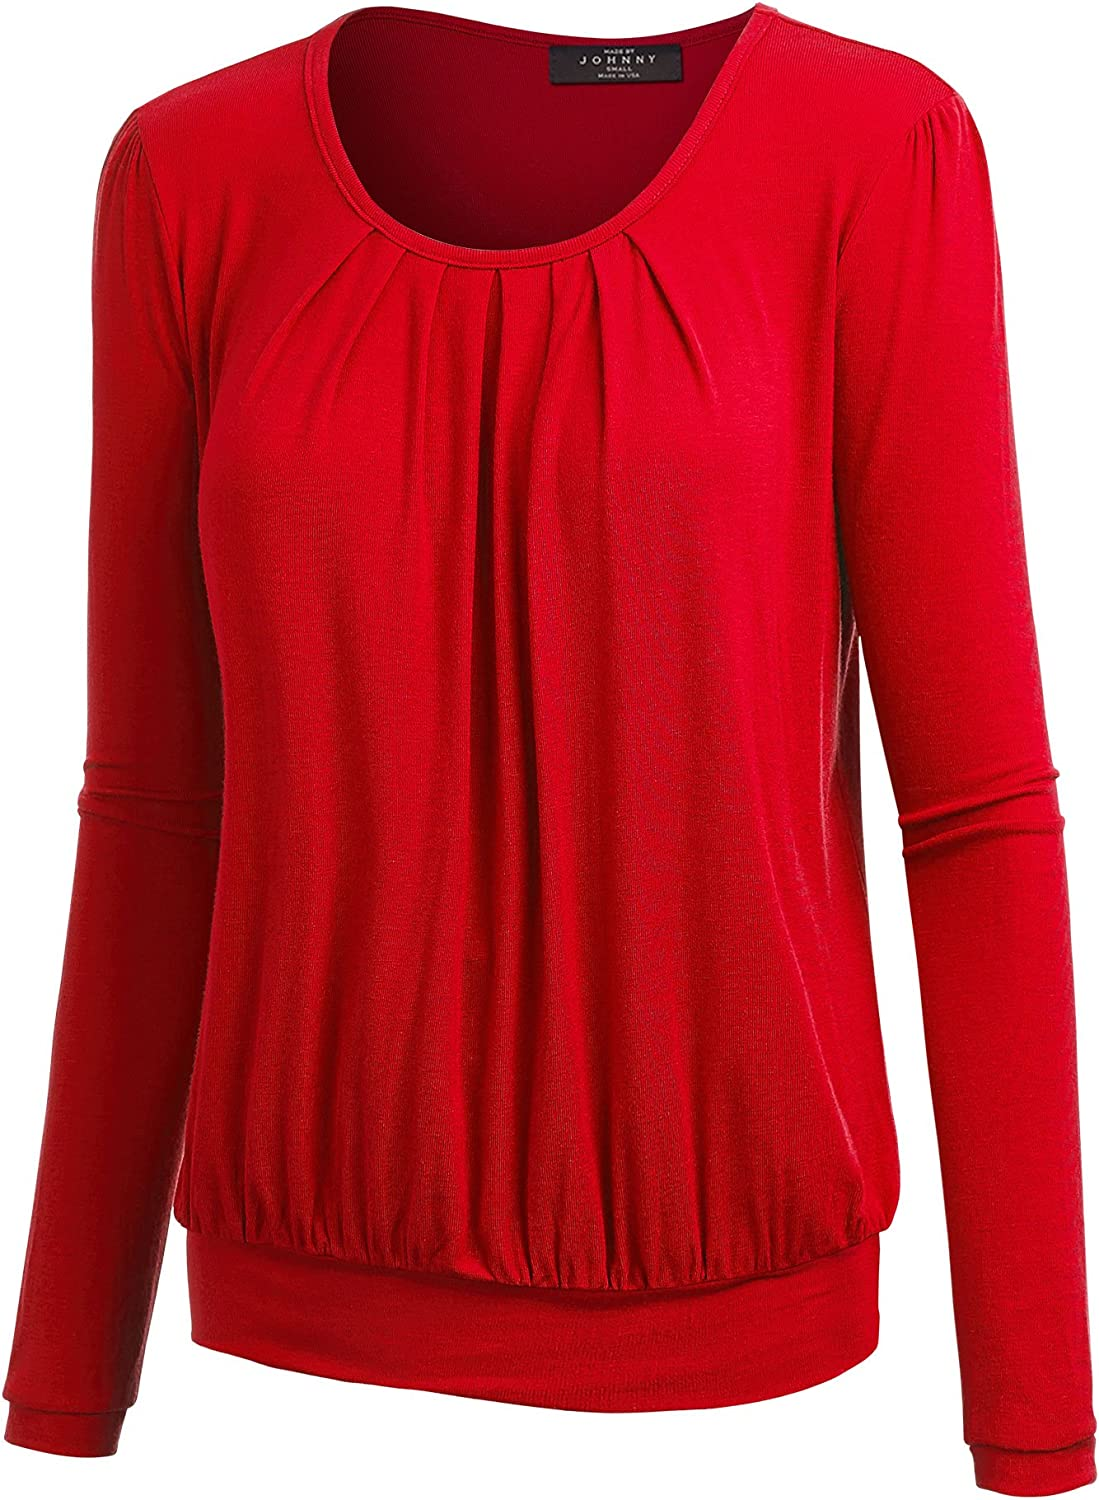 MBJ Womens UNeck Long Sleeve Pleats Top  Made in USA